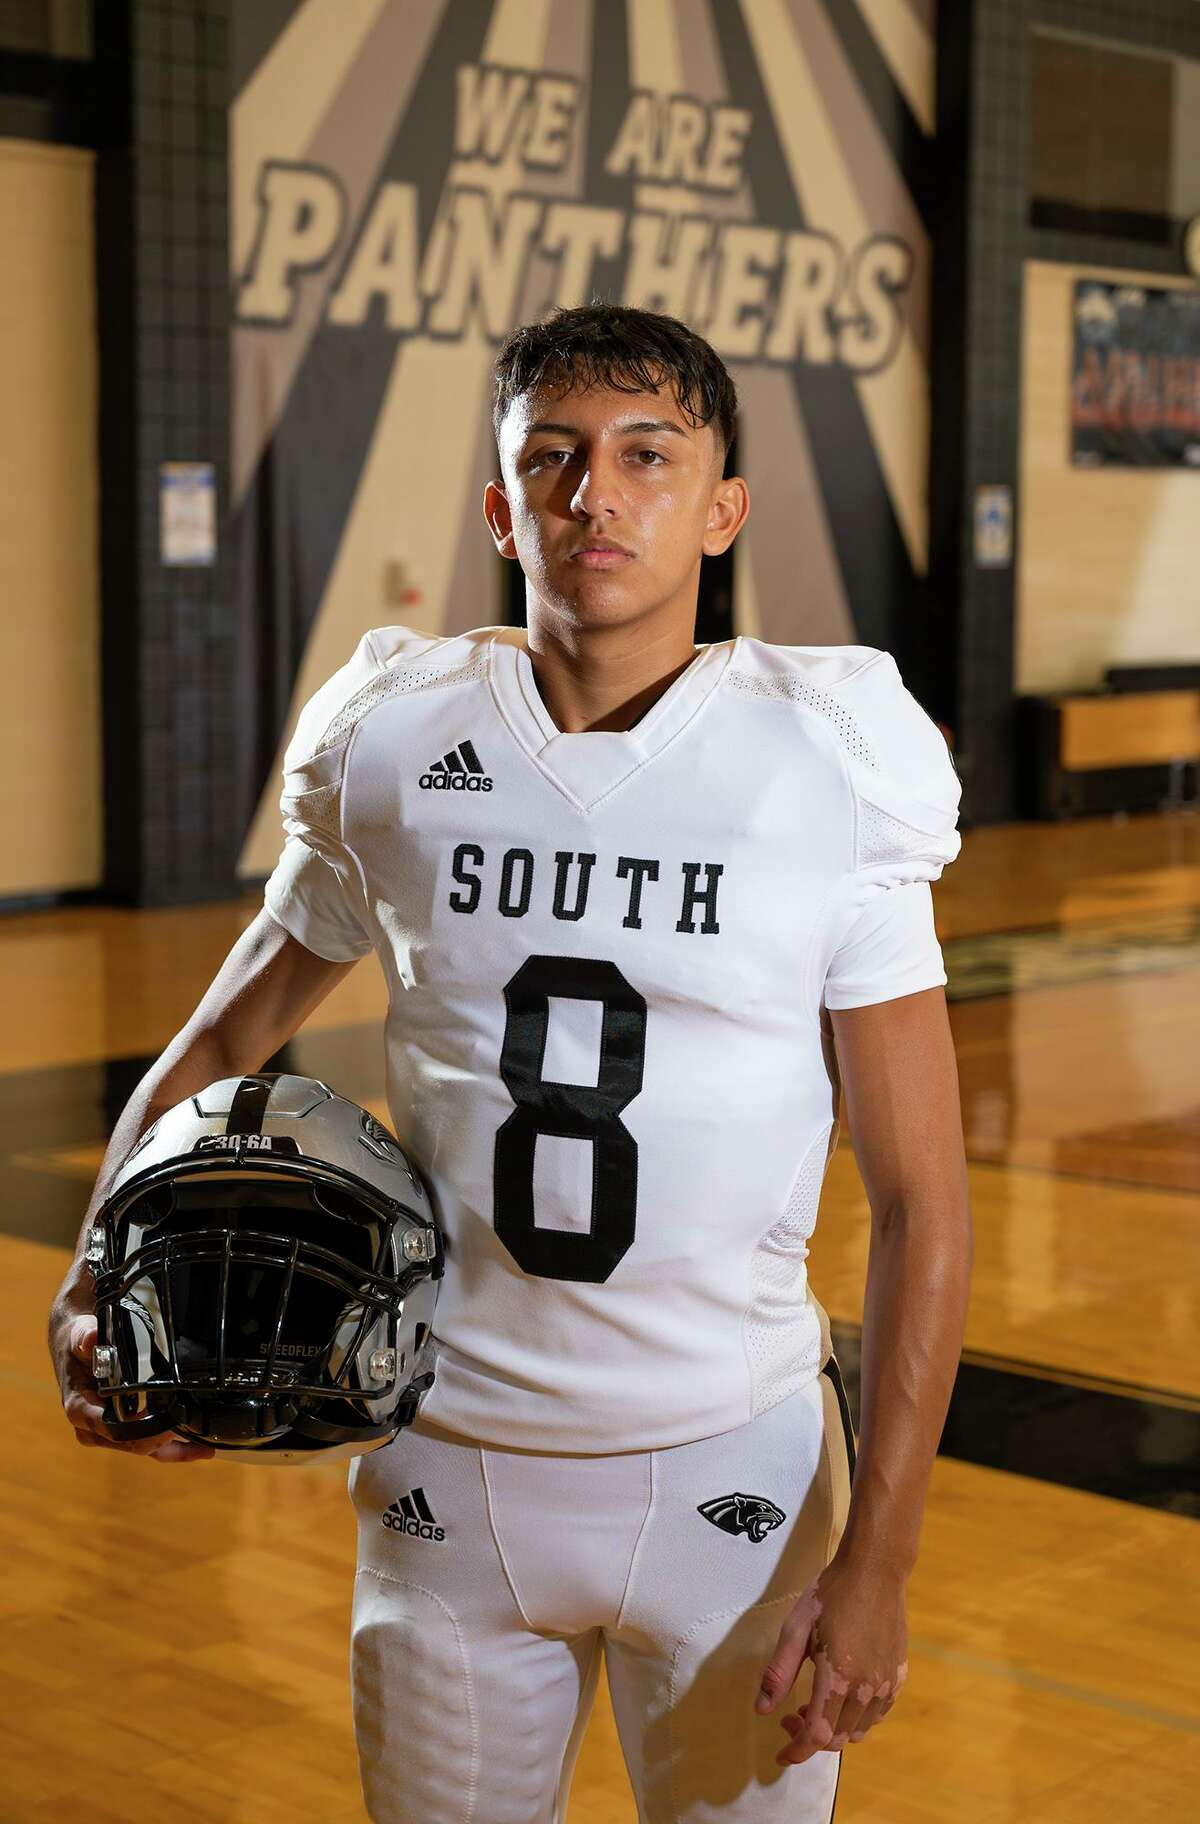 United South sophomore Luis Cisneros was named the starting quarterback after not making the team in his freshman season.